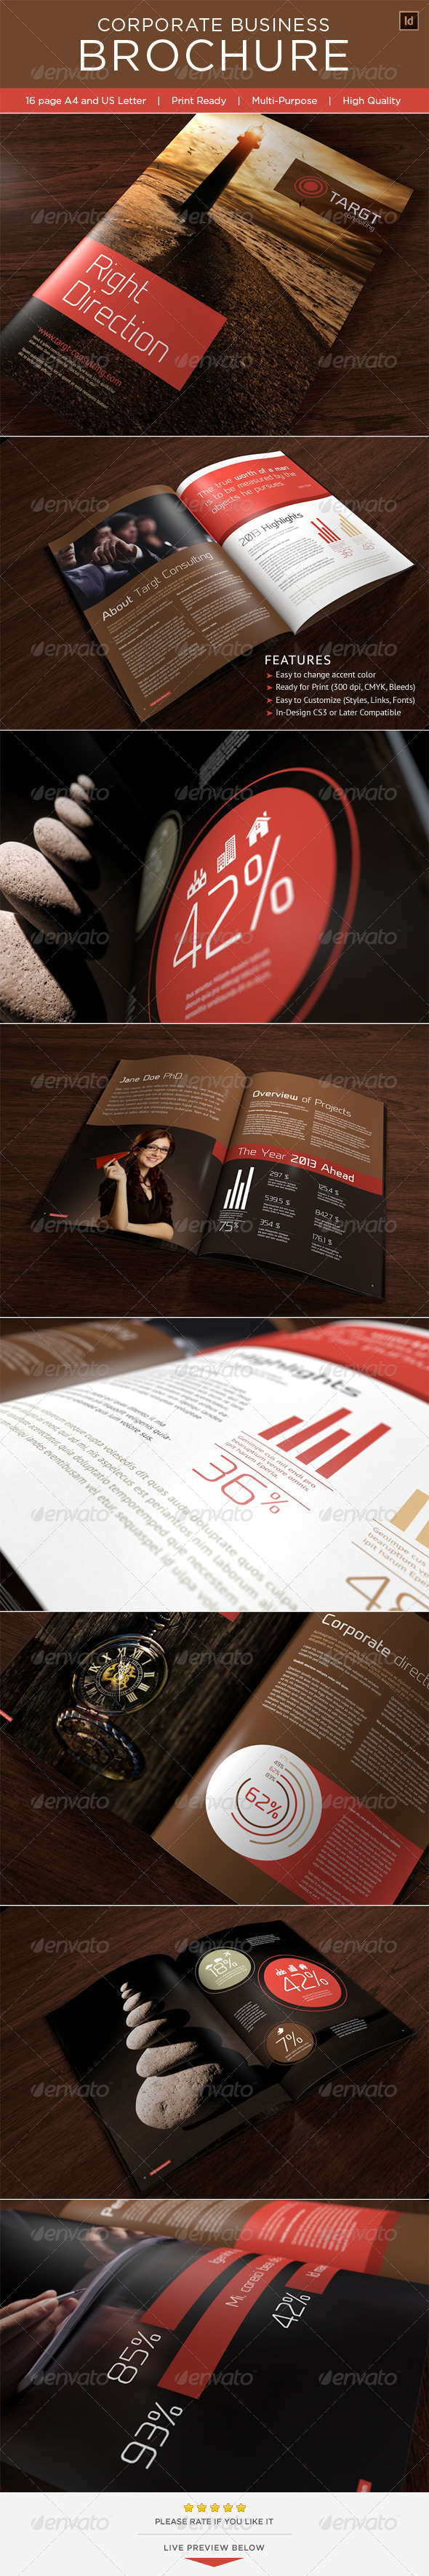 Corporate Business Brochure - Brochures Print Templates